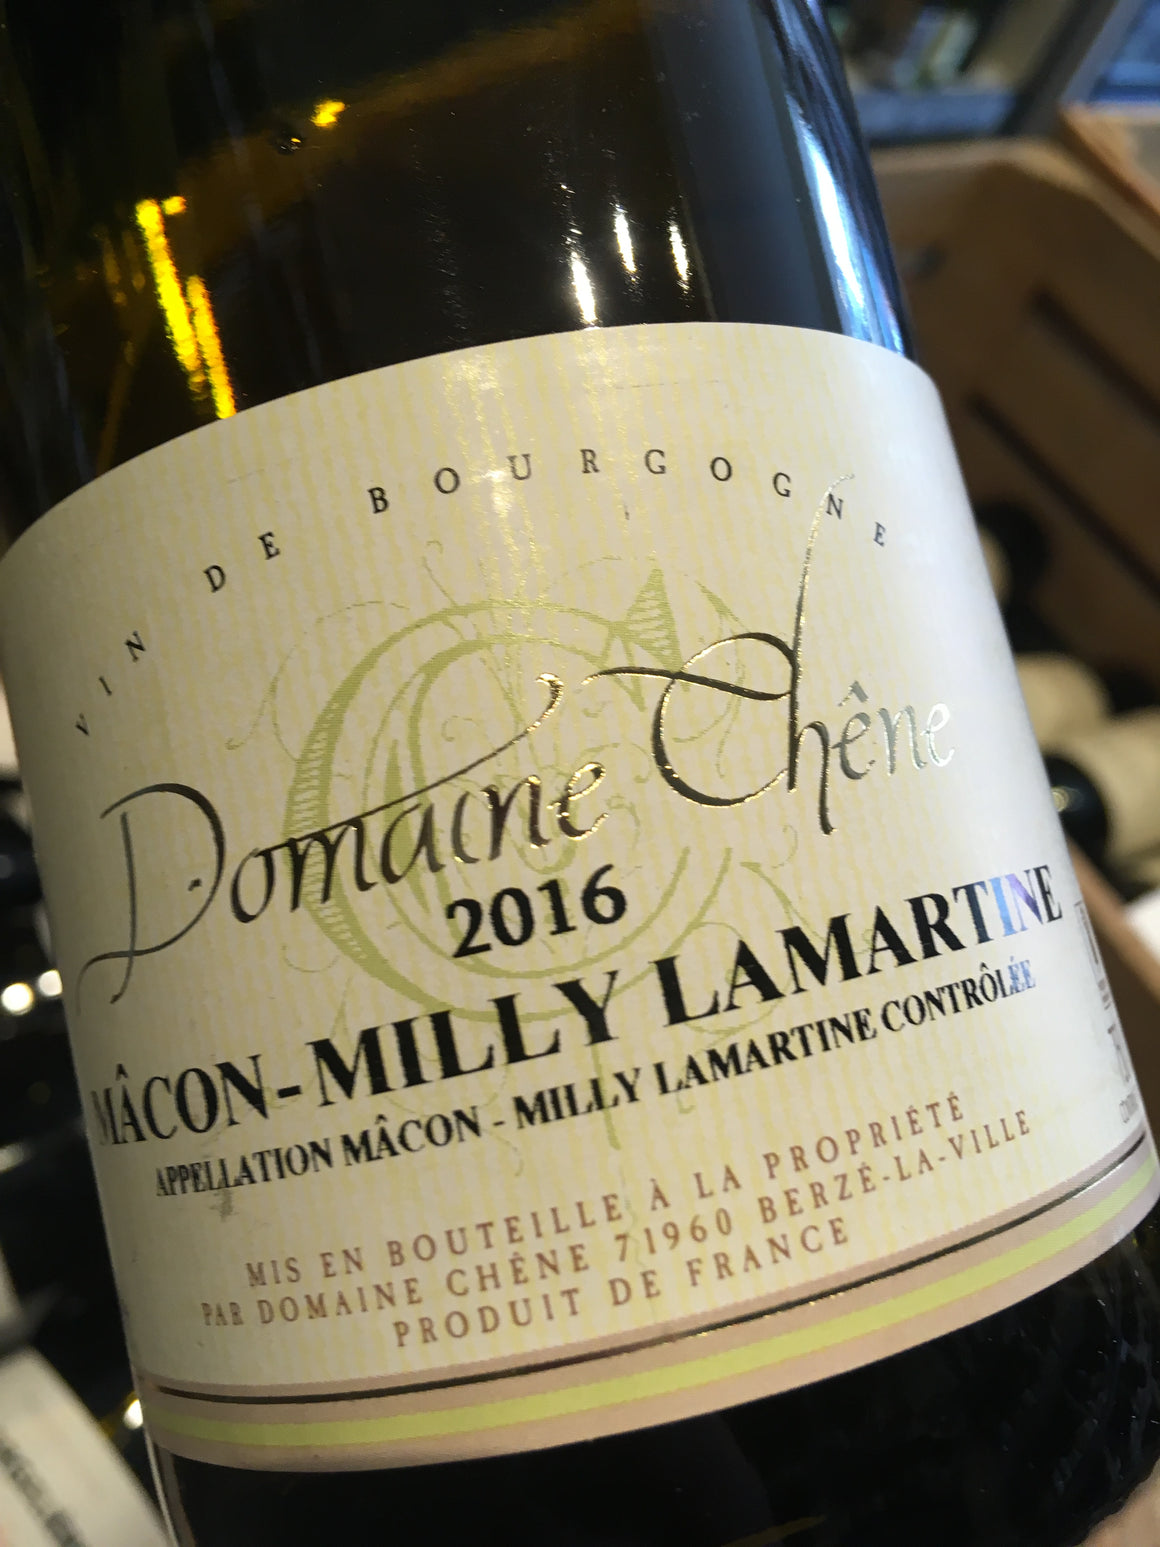 Domaine Chene Macon-Milly Lamartine 2017 75cl